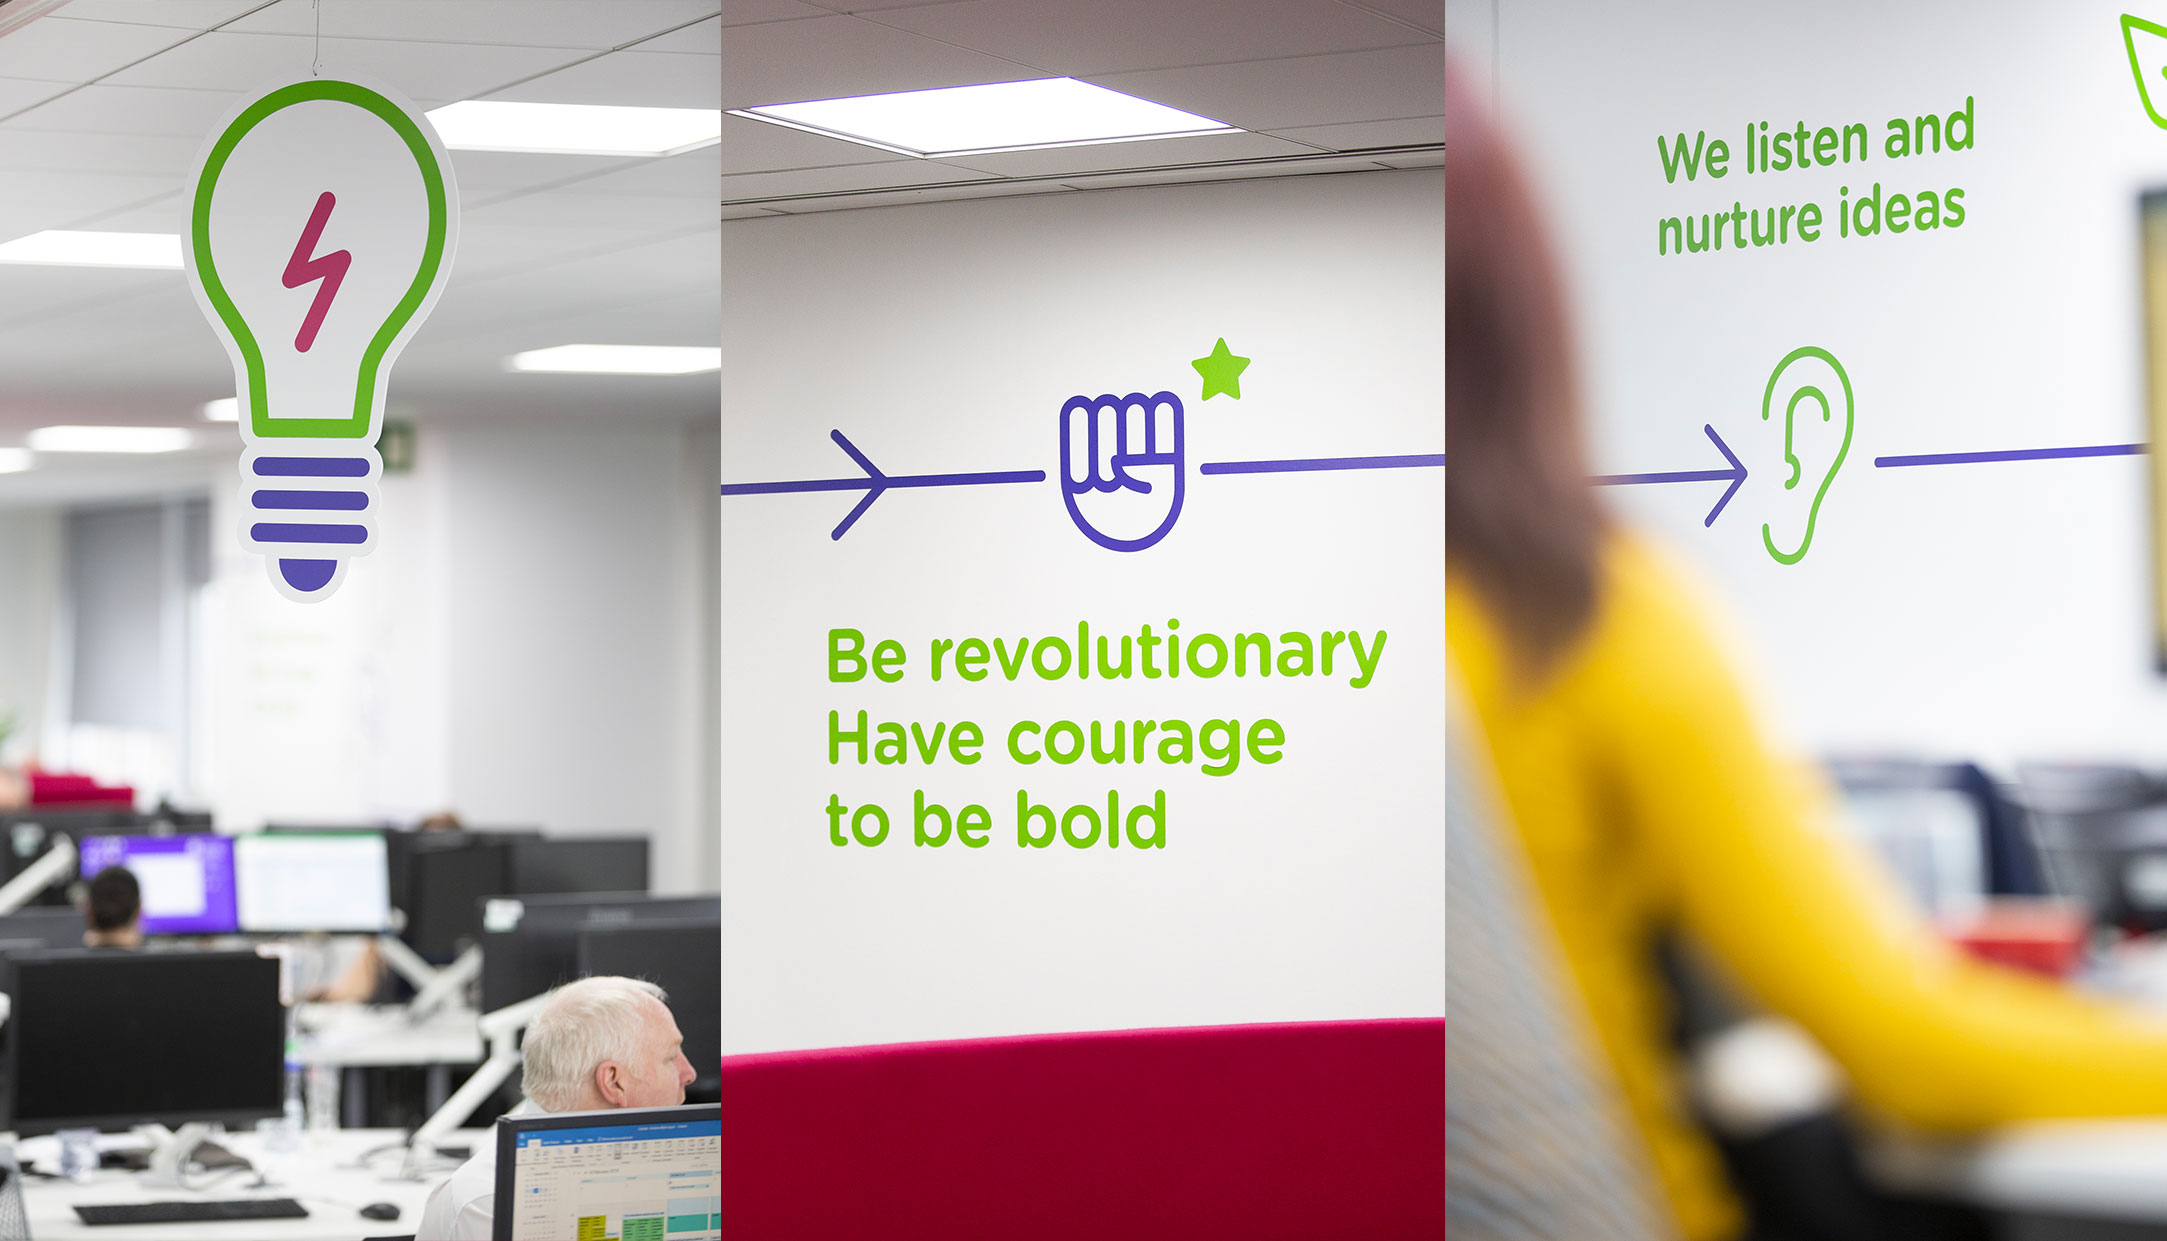 Housing association brand values and office interior wall vinyls by Altogether Creative.